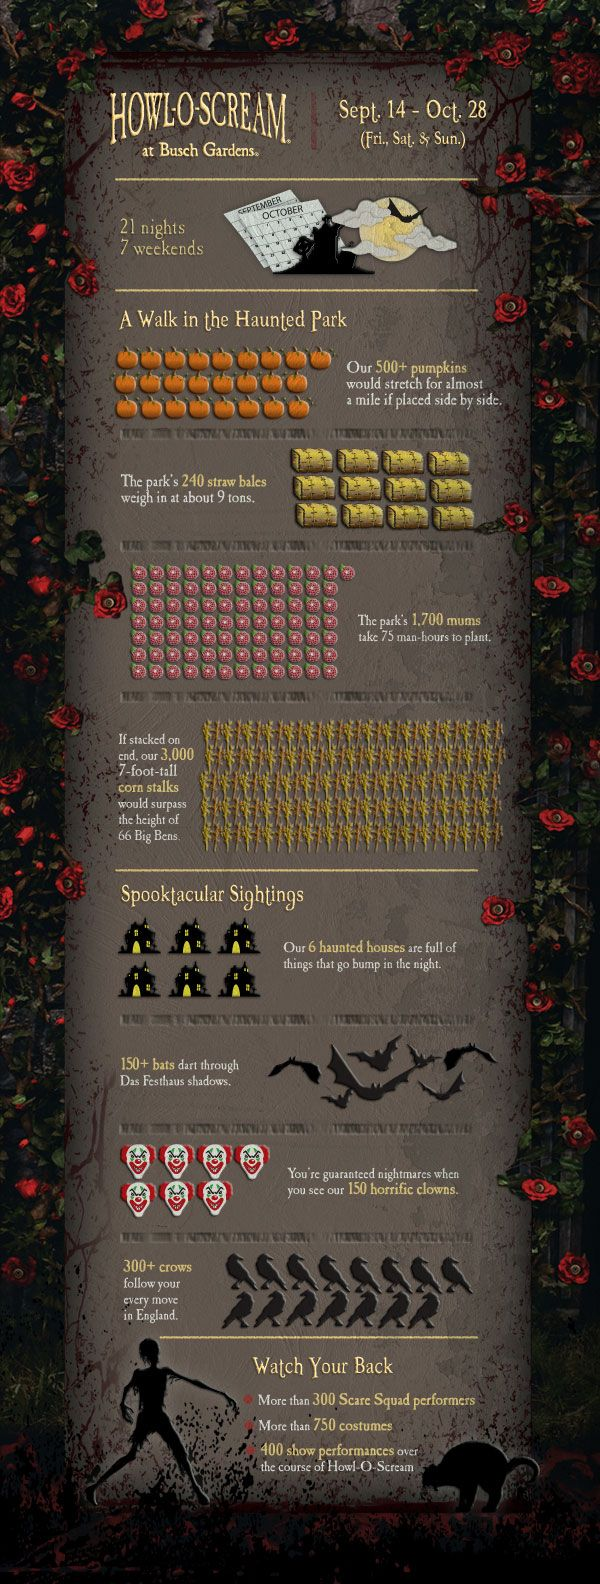 Fun facts about #HowlOScream at #BuschGardens - I cannot wait to go ...